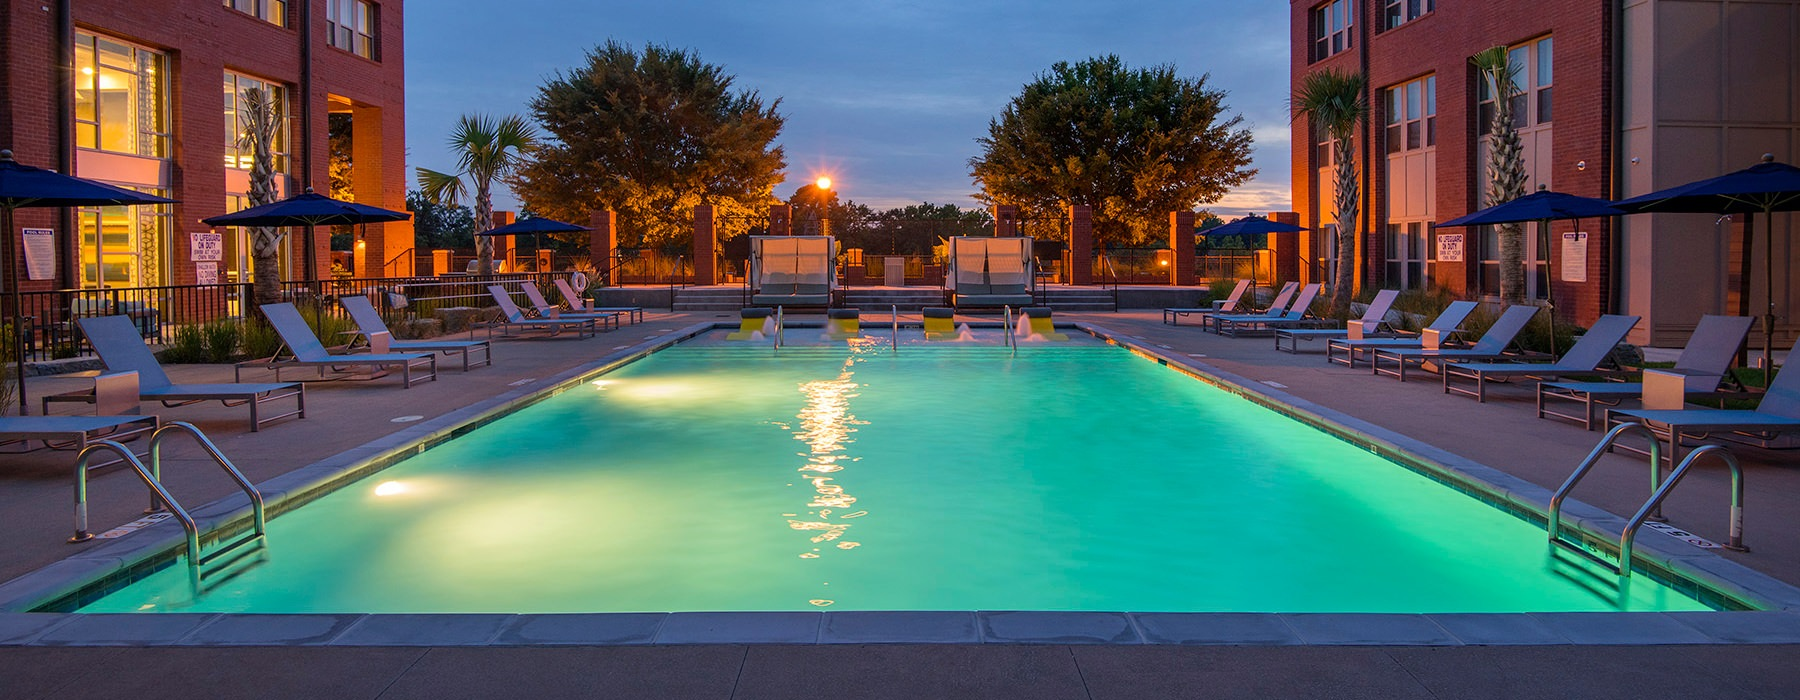 well lit outdoor pool at night surrounded by lounge chairs